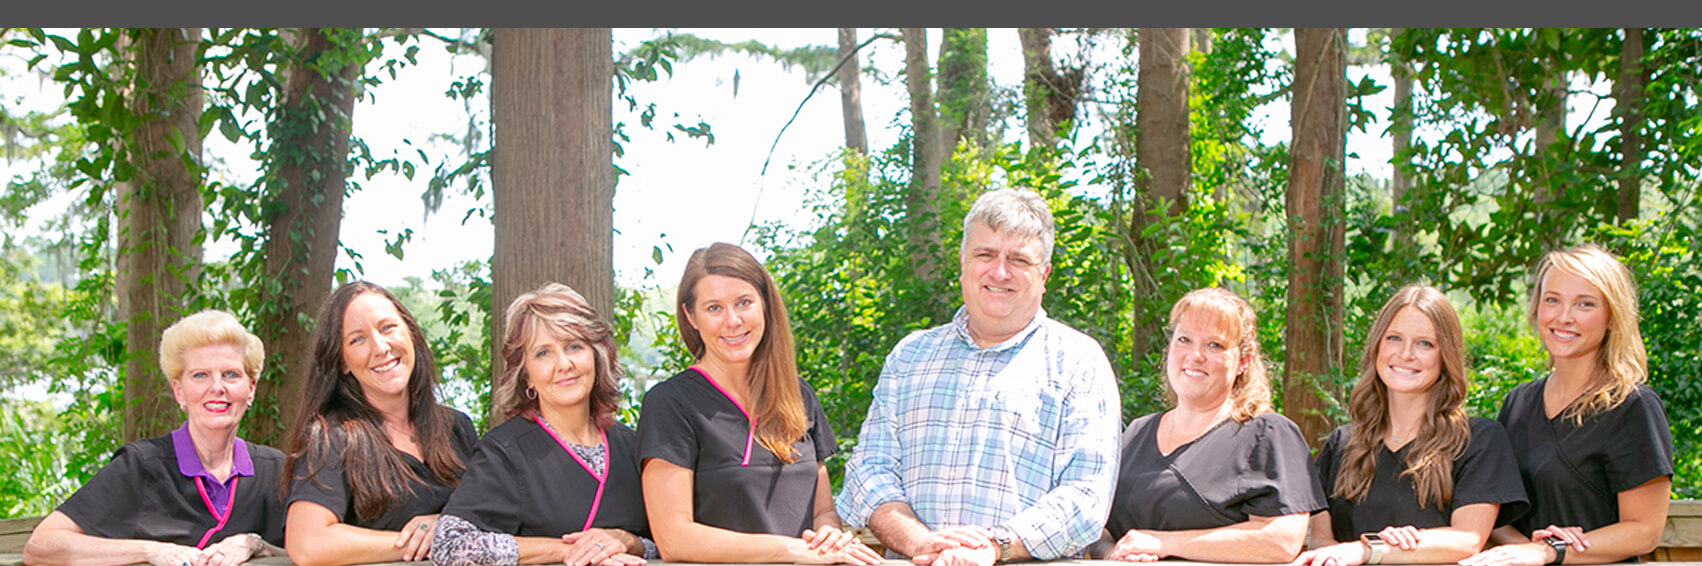 Dr. Gregory B. Garrett, DDS and his team in Wilmington, NC.